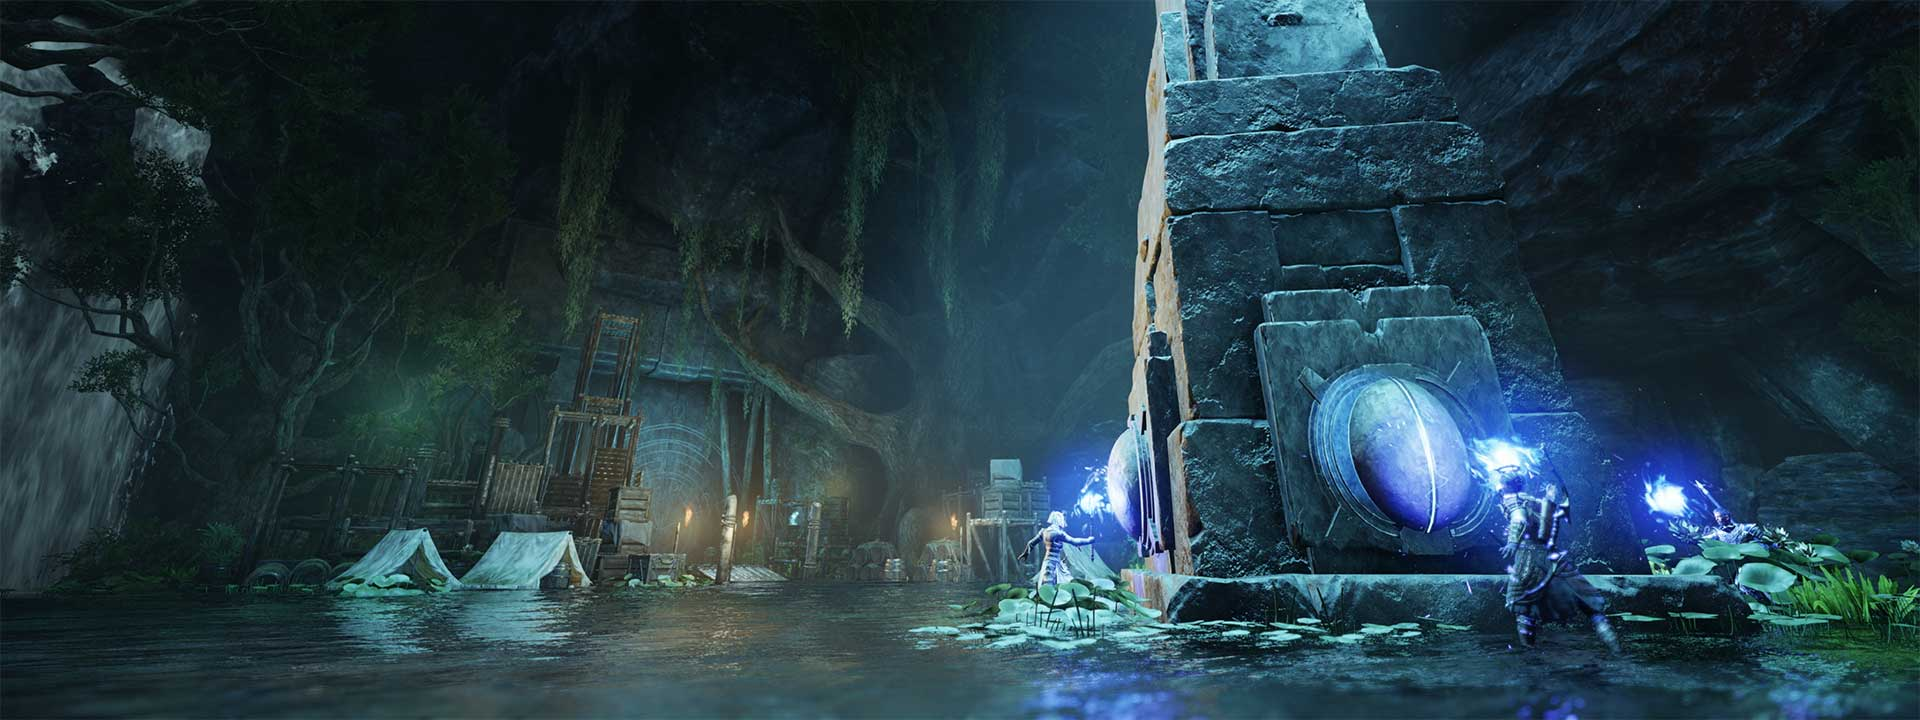 Characters holding blue-flame torches stand on each face of a towering stone obelisk inside a dark arena.